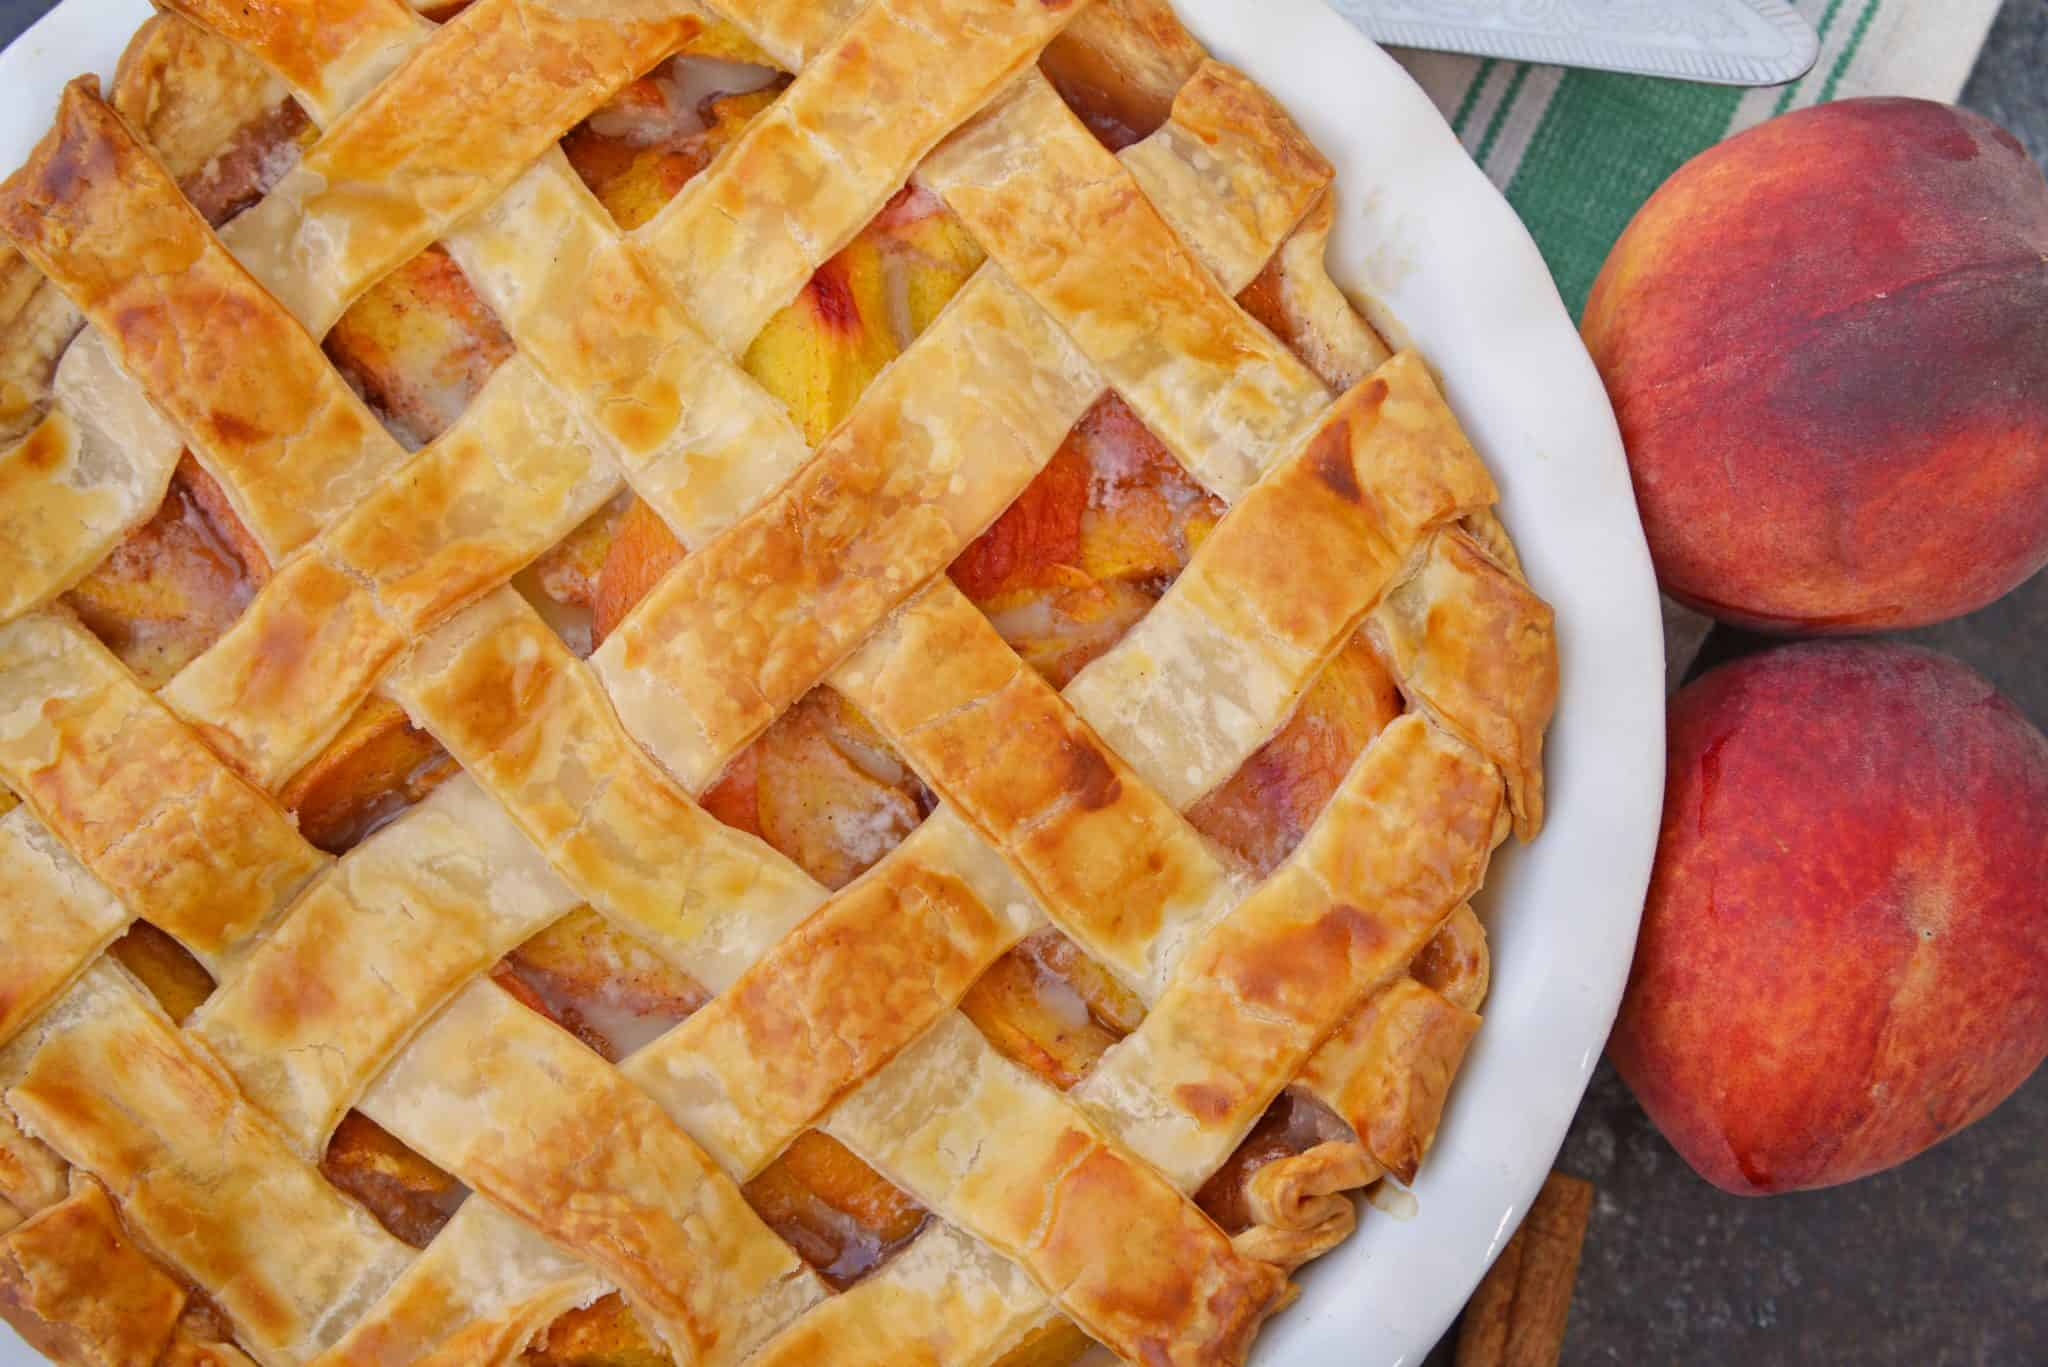 Southern Peach Pie a traditional peach pie using fresh peaches baked in a flaky, buttery lattice crust.#southernpeachpie #peachpie www.savoryexerperiments.com